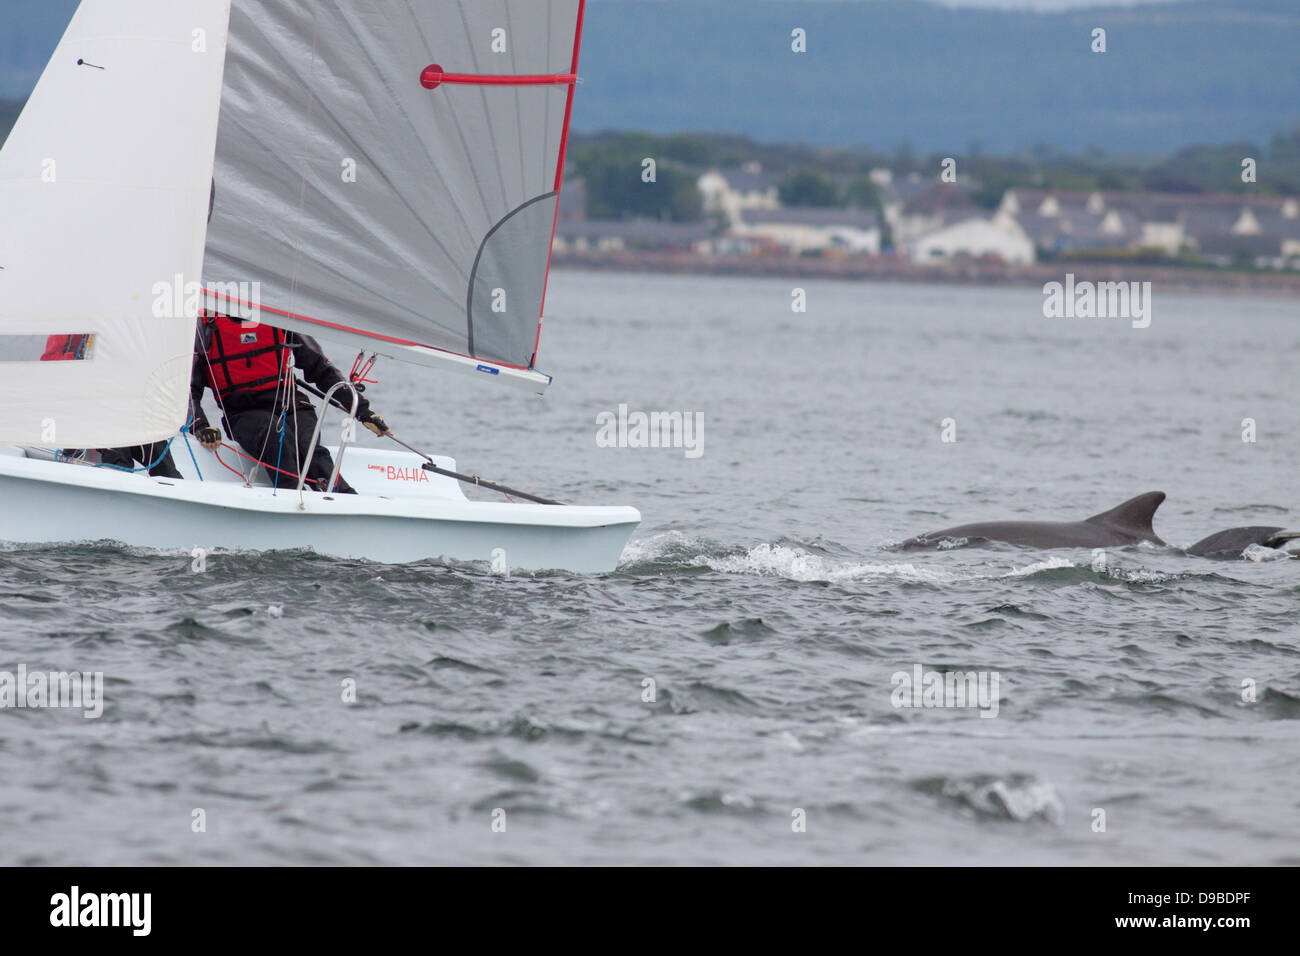 Bottlenose DolphinS (Tursiops truncatus) following a little sailboat in the Moray Firth, Chanonry Point, Scotland, - Stock Image